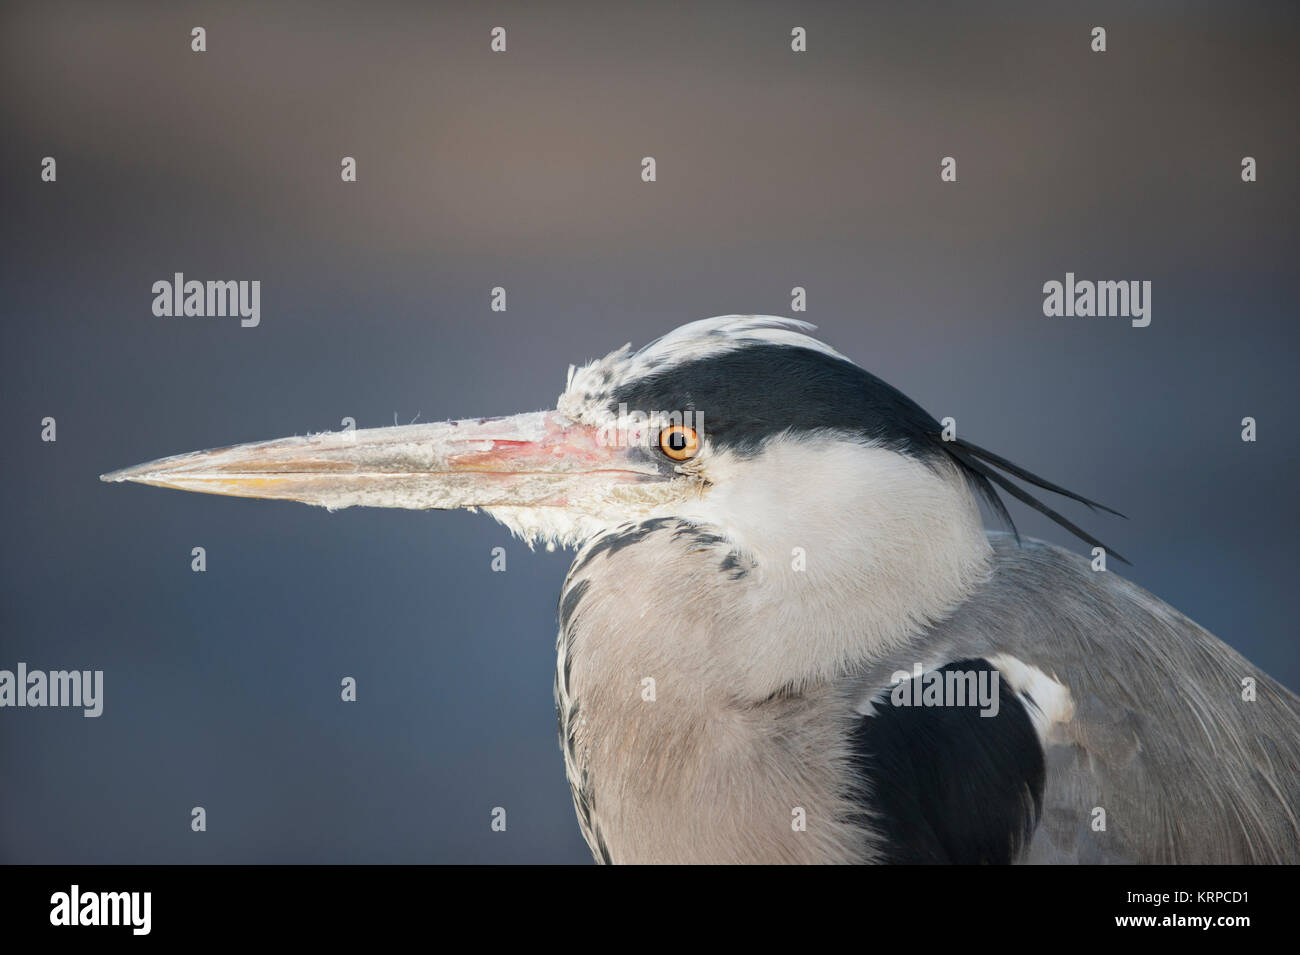 Grey Heron, (Ardea cinerea), Regents Park, London, United Kingdom - Stock Image